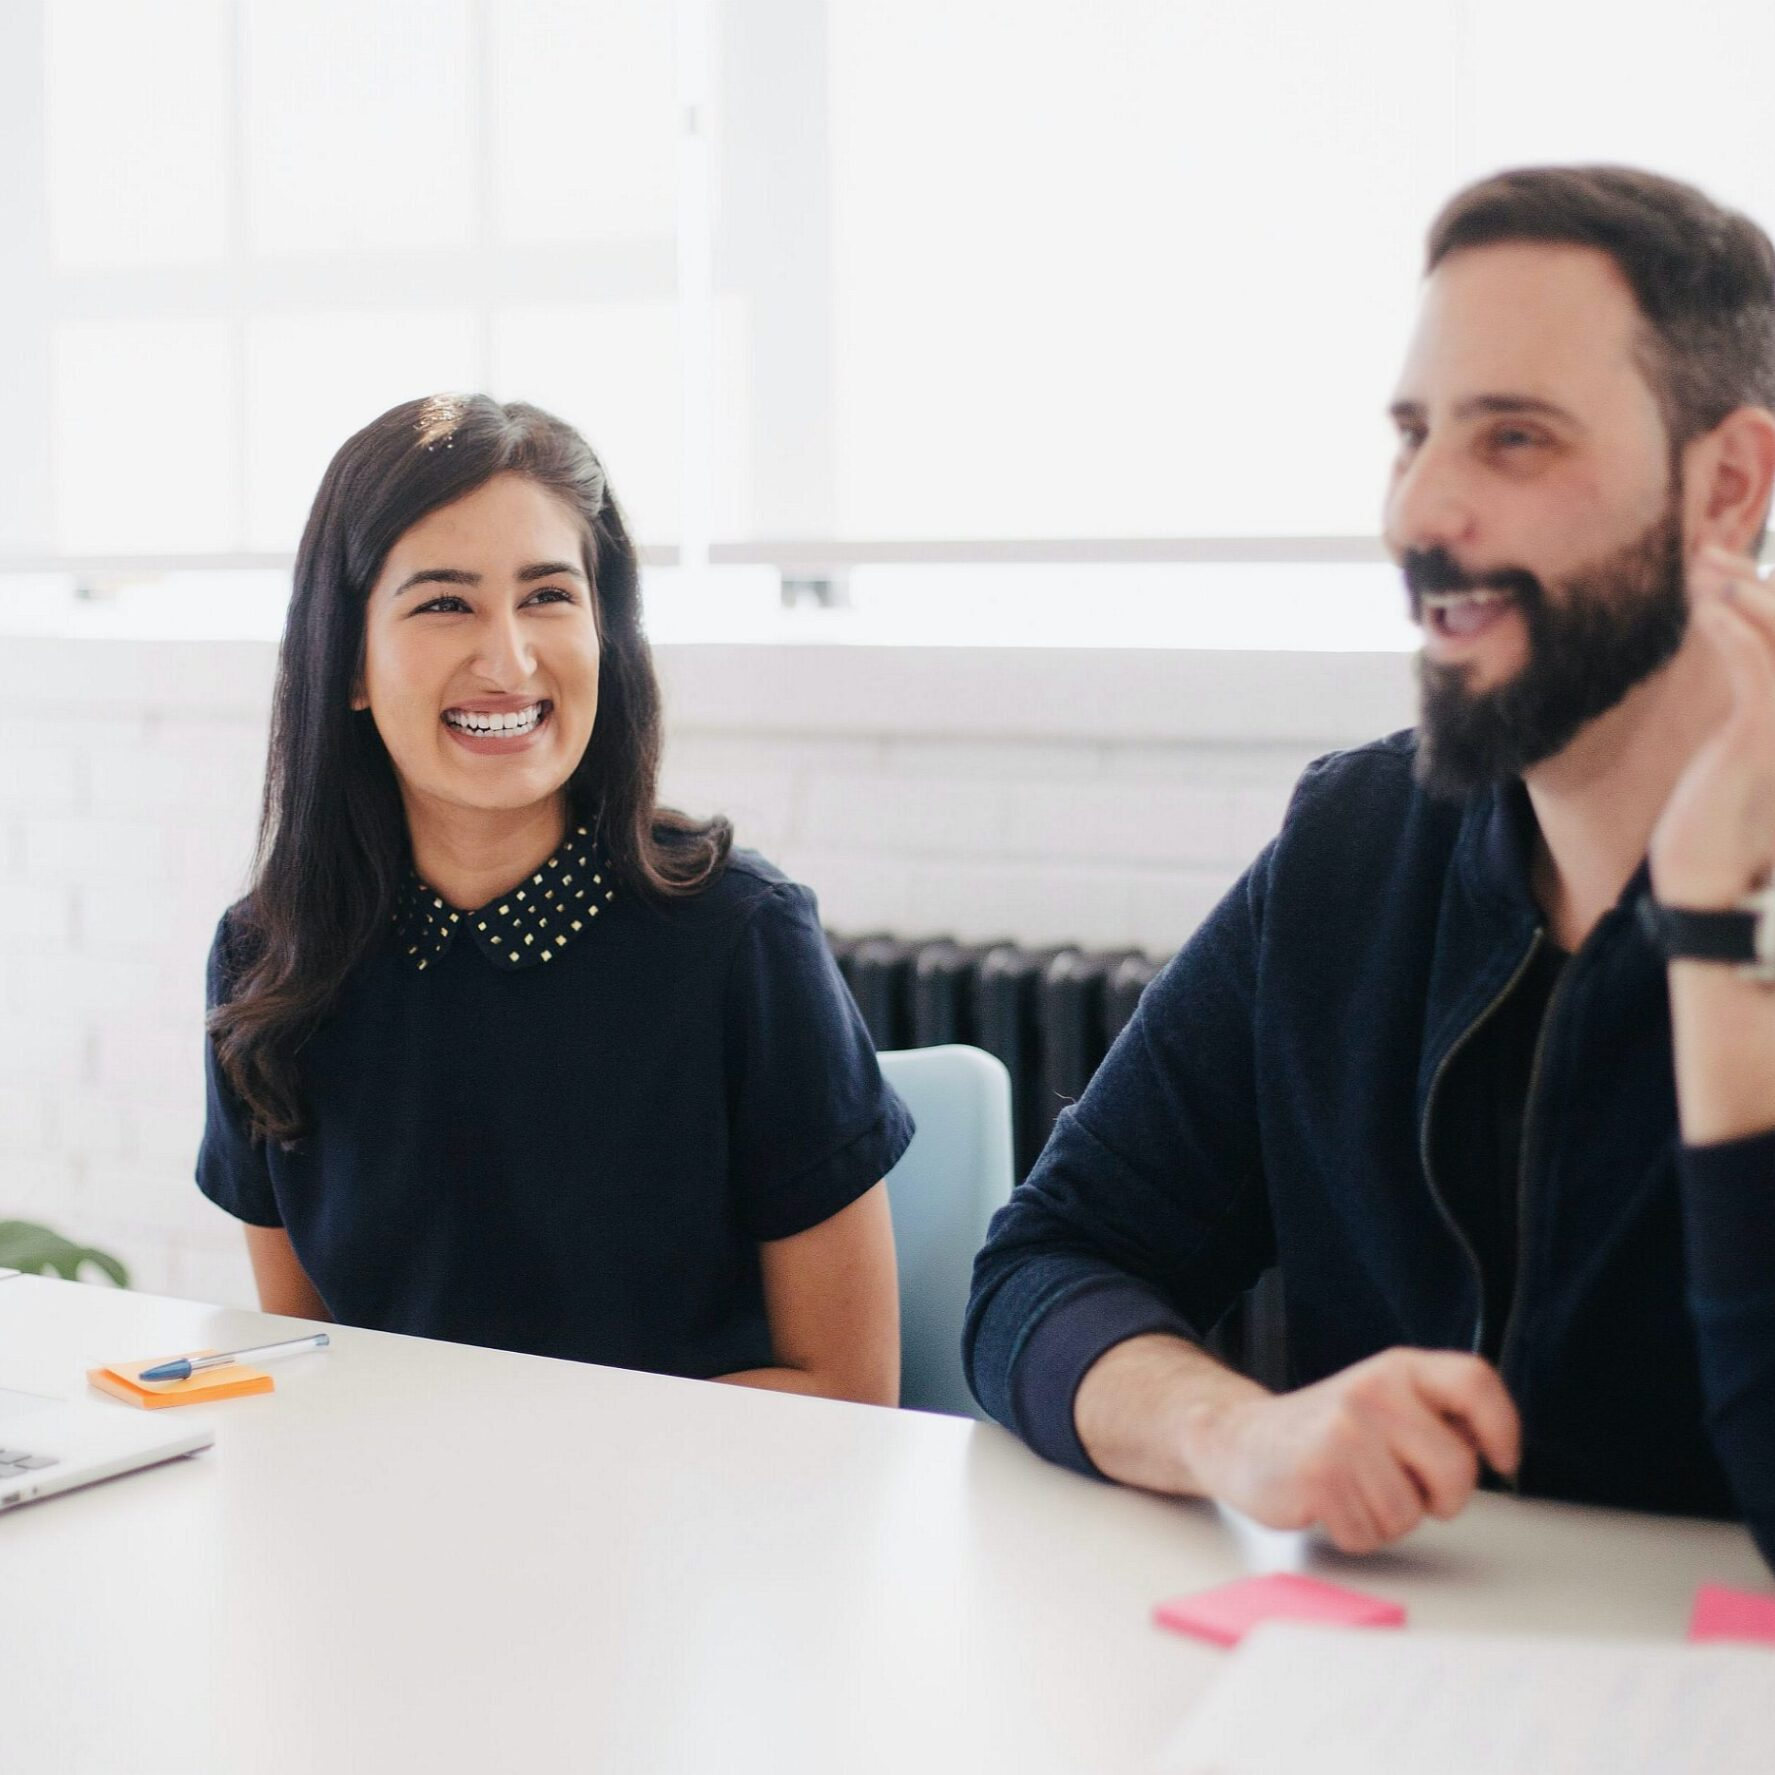 Woman and man smiling at work